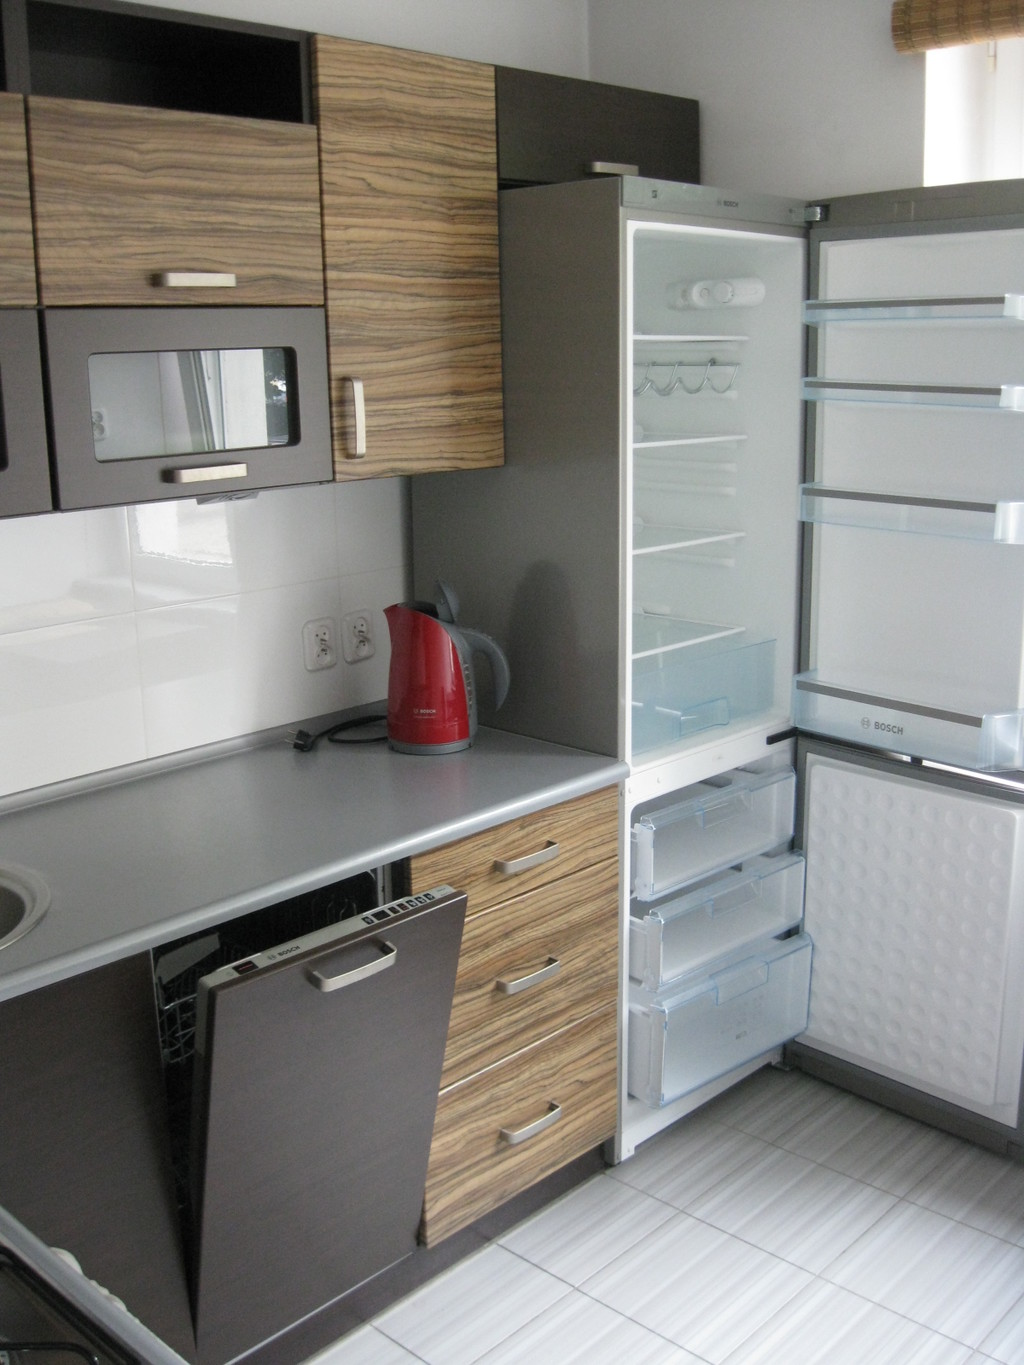 Large 3 Room Apartment In Poznan Poland For Students